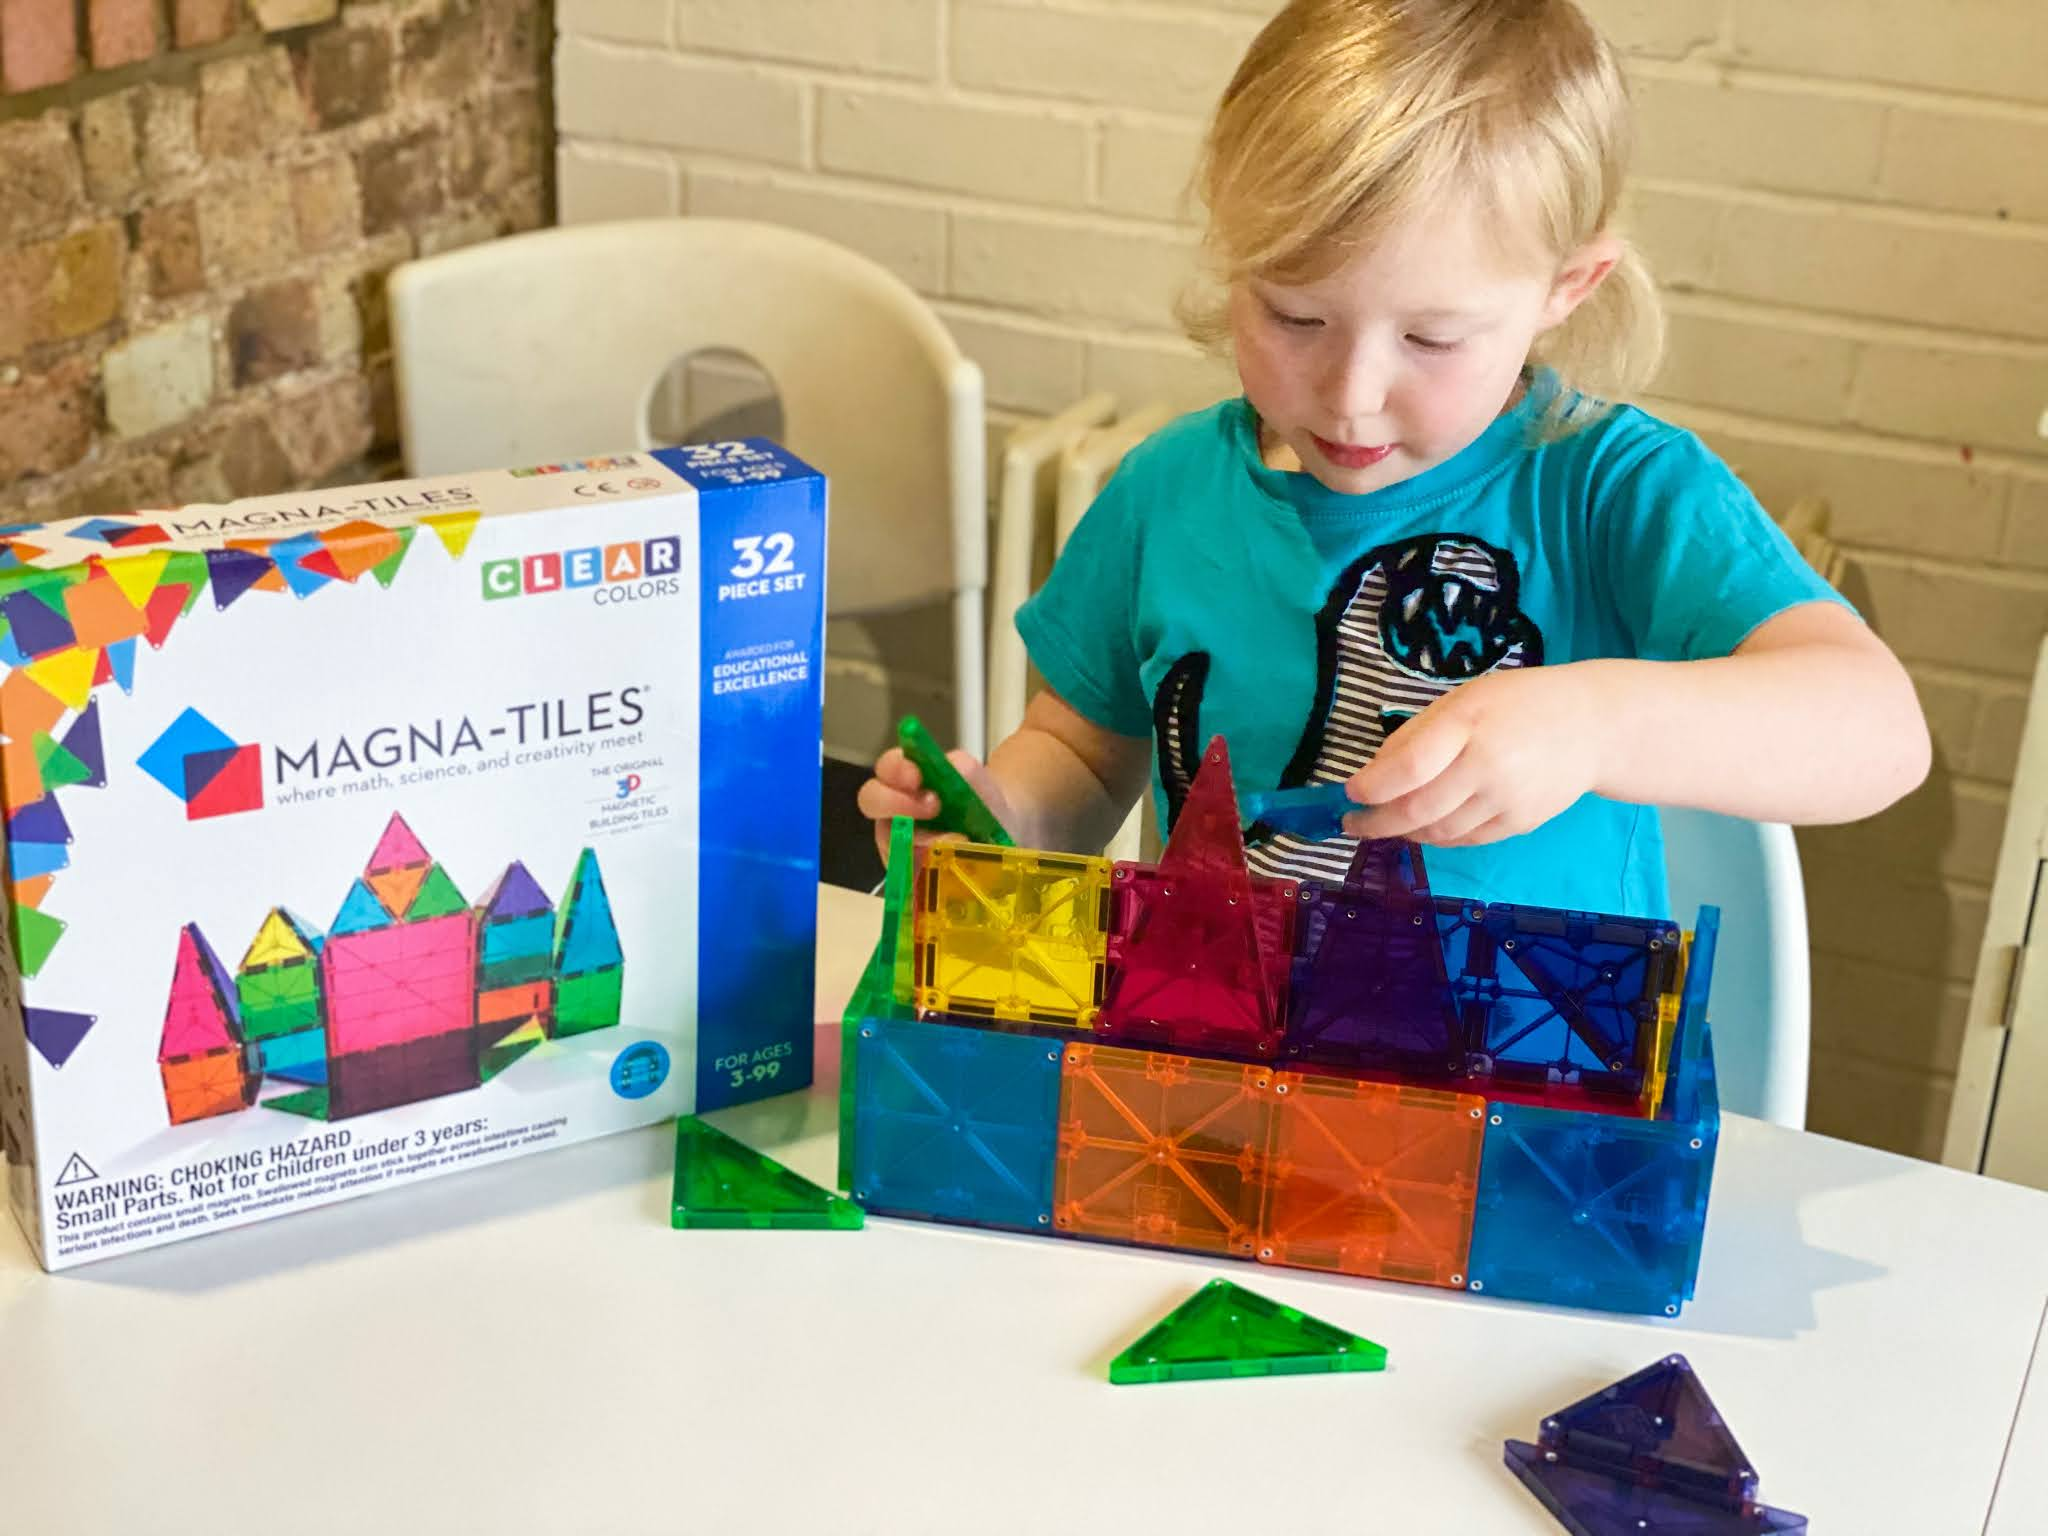 Magna-tiles Clear Tiles 32 piece set being played with by a 5 year old